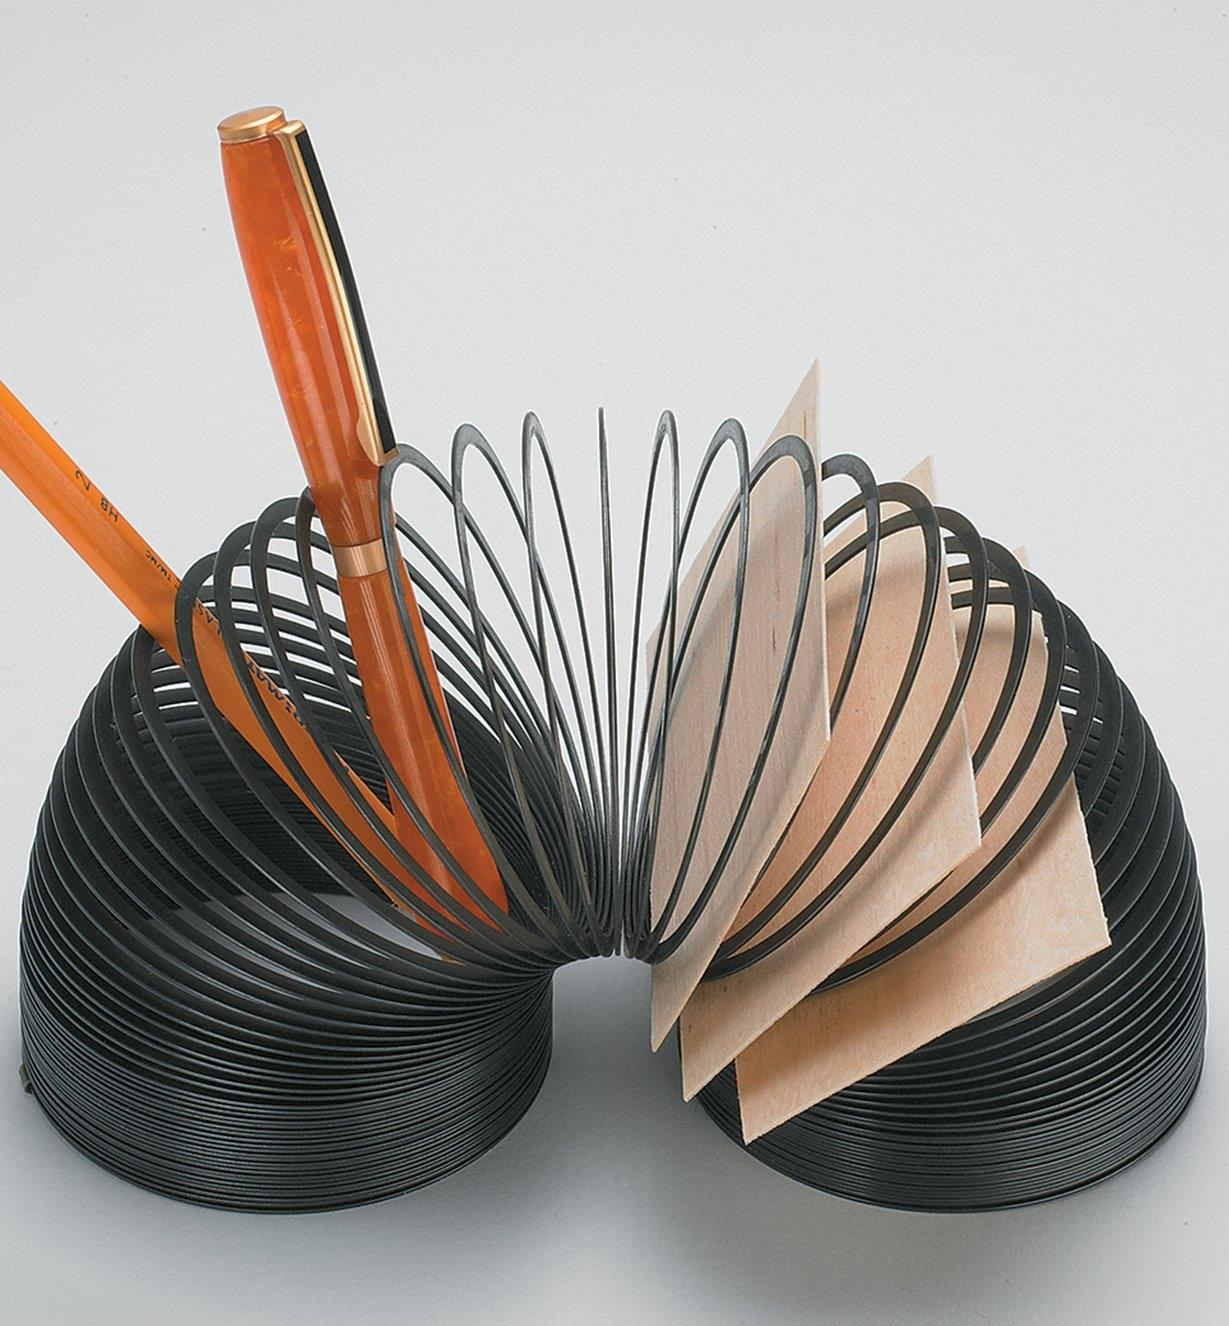 A Slinky used to hold a pen, pencil and business cards